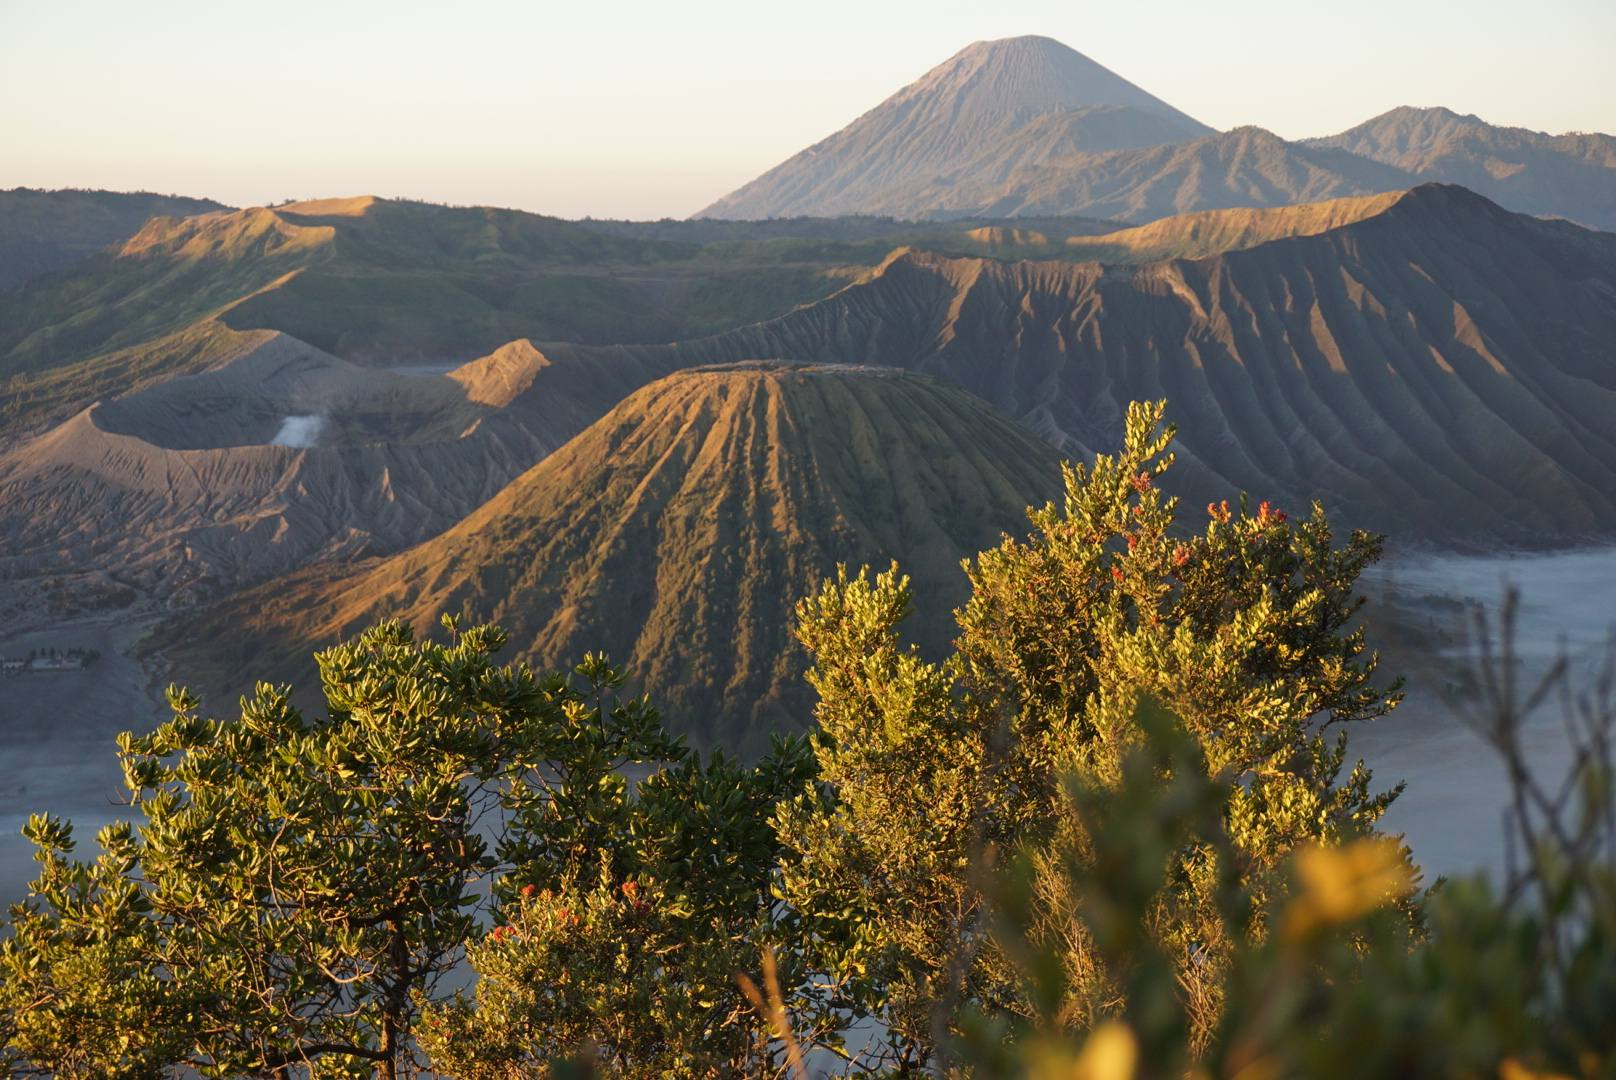 Bromo viewpoint